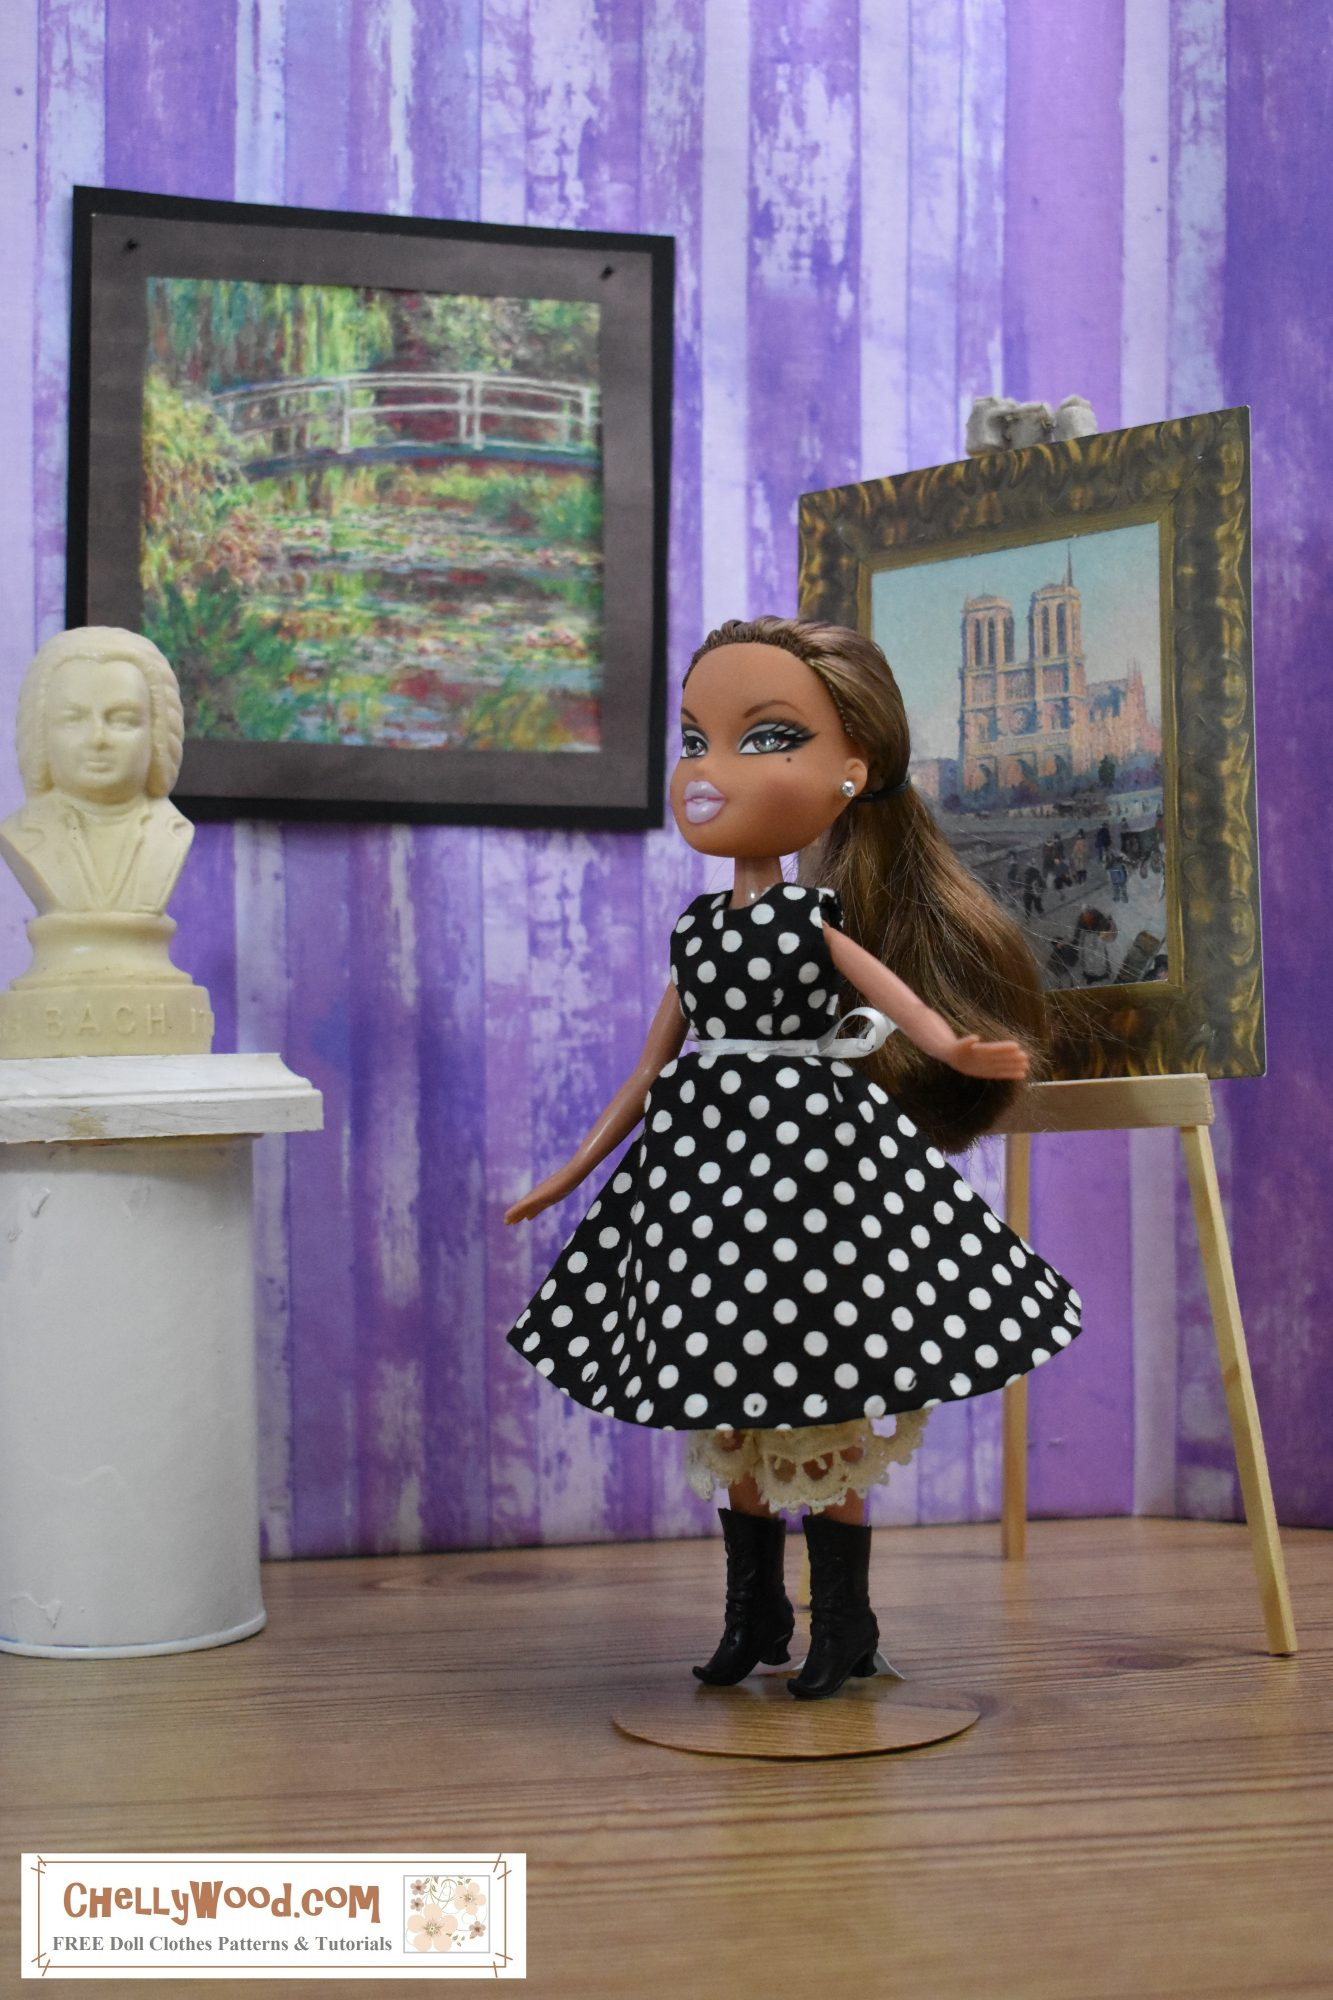 The image shows a Bratz doll wearing an A-line dress with no sleeves and a pair of bloomers. She stands in an art museum diorama displaying tiny paintings on tripod and wall and there's also a bust of Beethoven in the background. Would you like to sew the little black and white polka dotted cotton dress modeled by this Bratz doll? The patterns for this A-line doll dress are free and printable. Just click on the URL given or go to ChellyWood.com to learn more about Chelly Wood's free printable sewing patterns for doll clothes to fit dolls of many shapes and all different sizes.